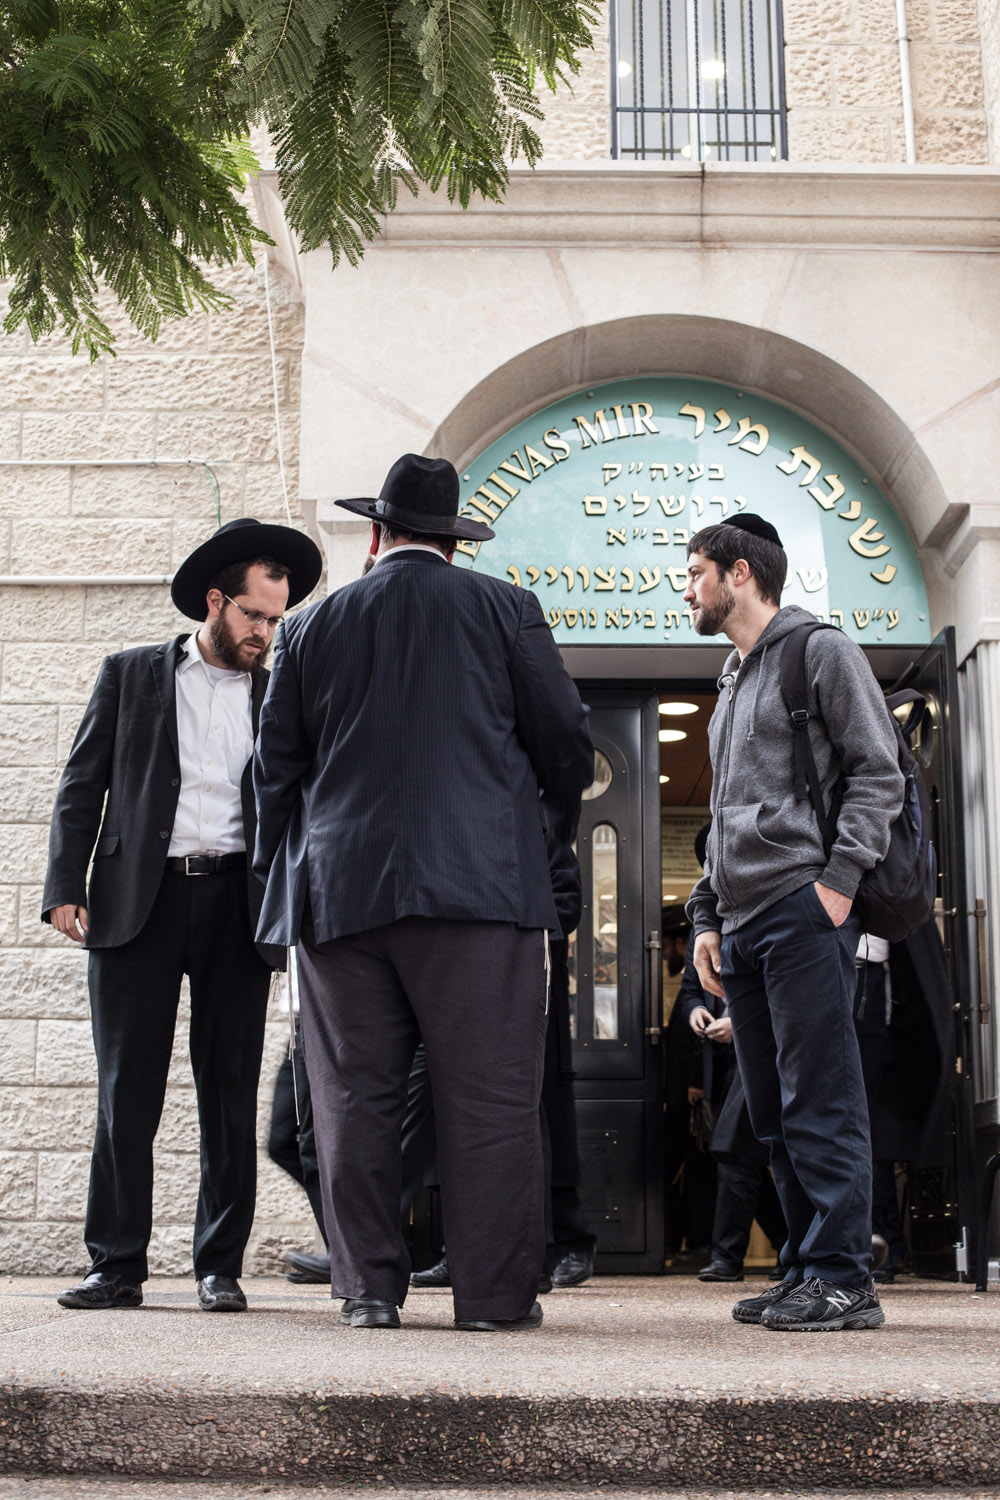 Unexpected encounter with old classmates in front of his former Yeshiva - a religious school for male Ultra-Orthodox  Mea Shearim, Jerusalem, January 2016